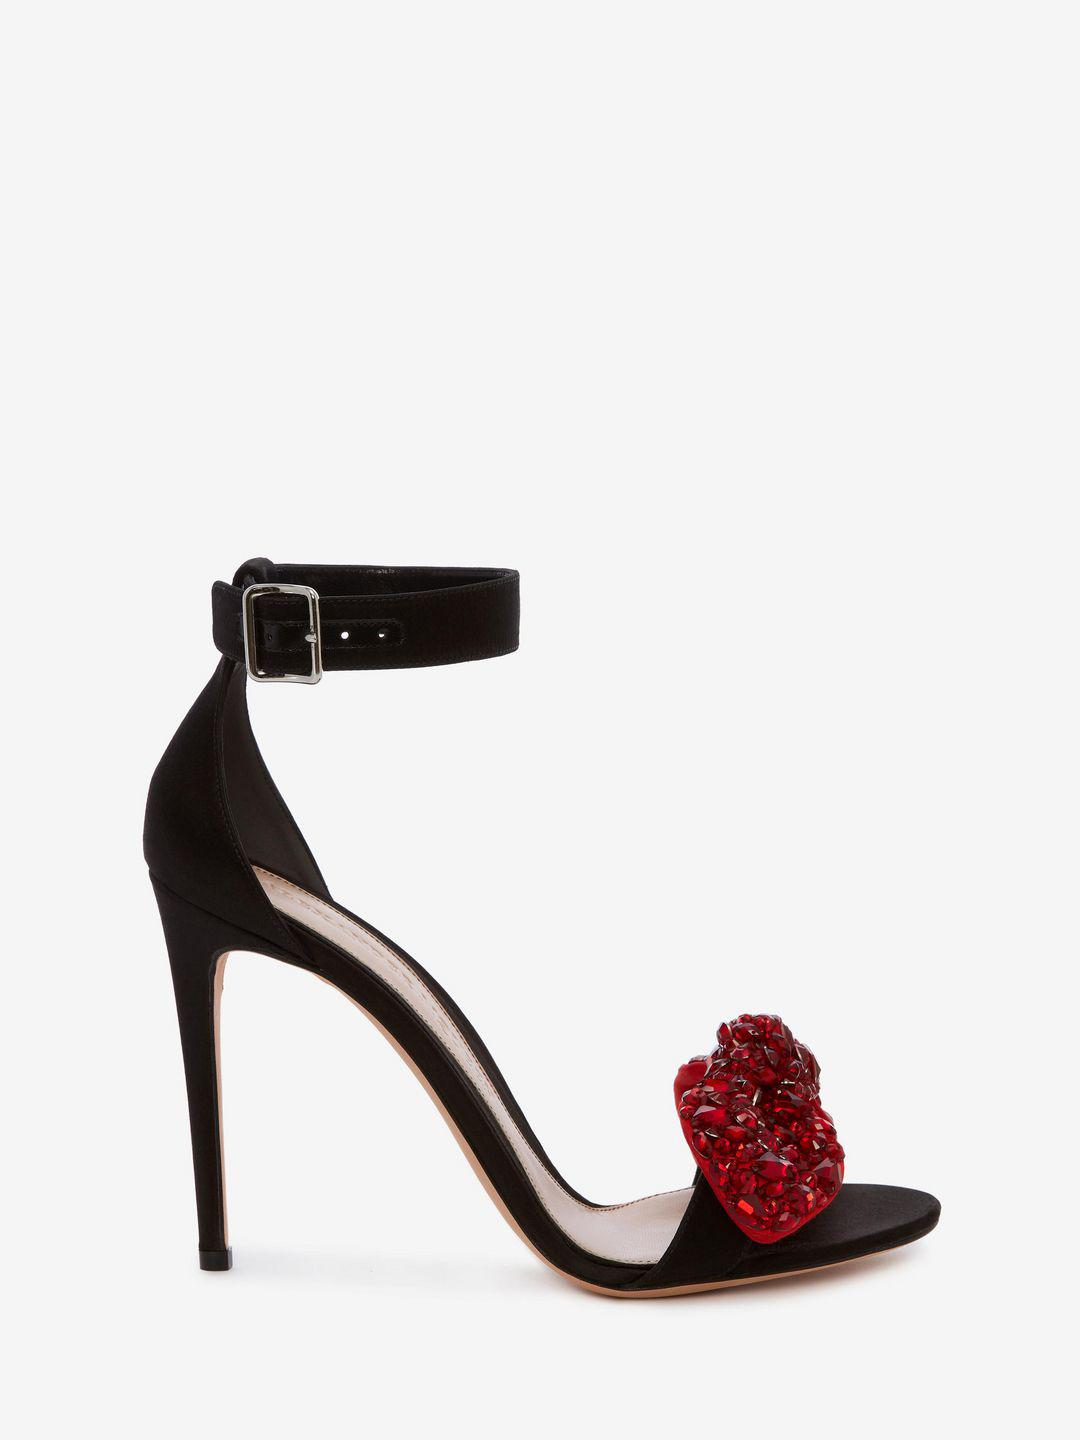 c51c69bed92 Lyst - Alexander McQueen Bow Embroidered Sandal in Black